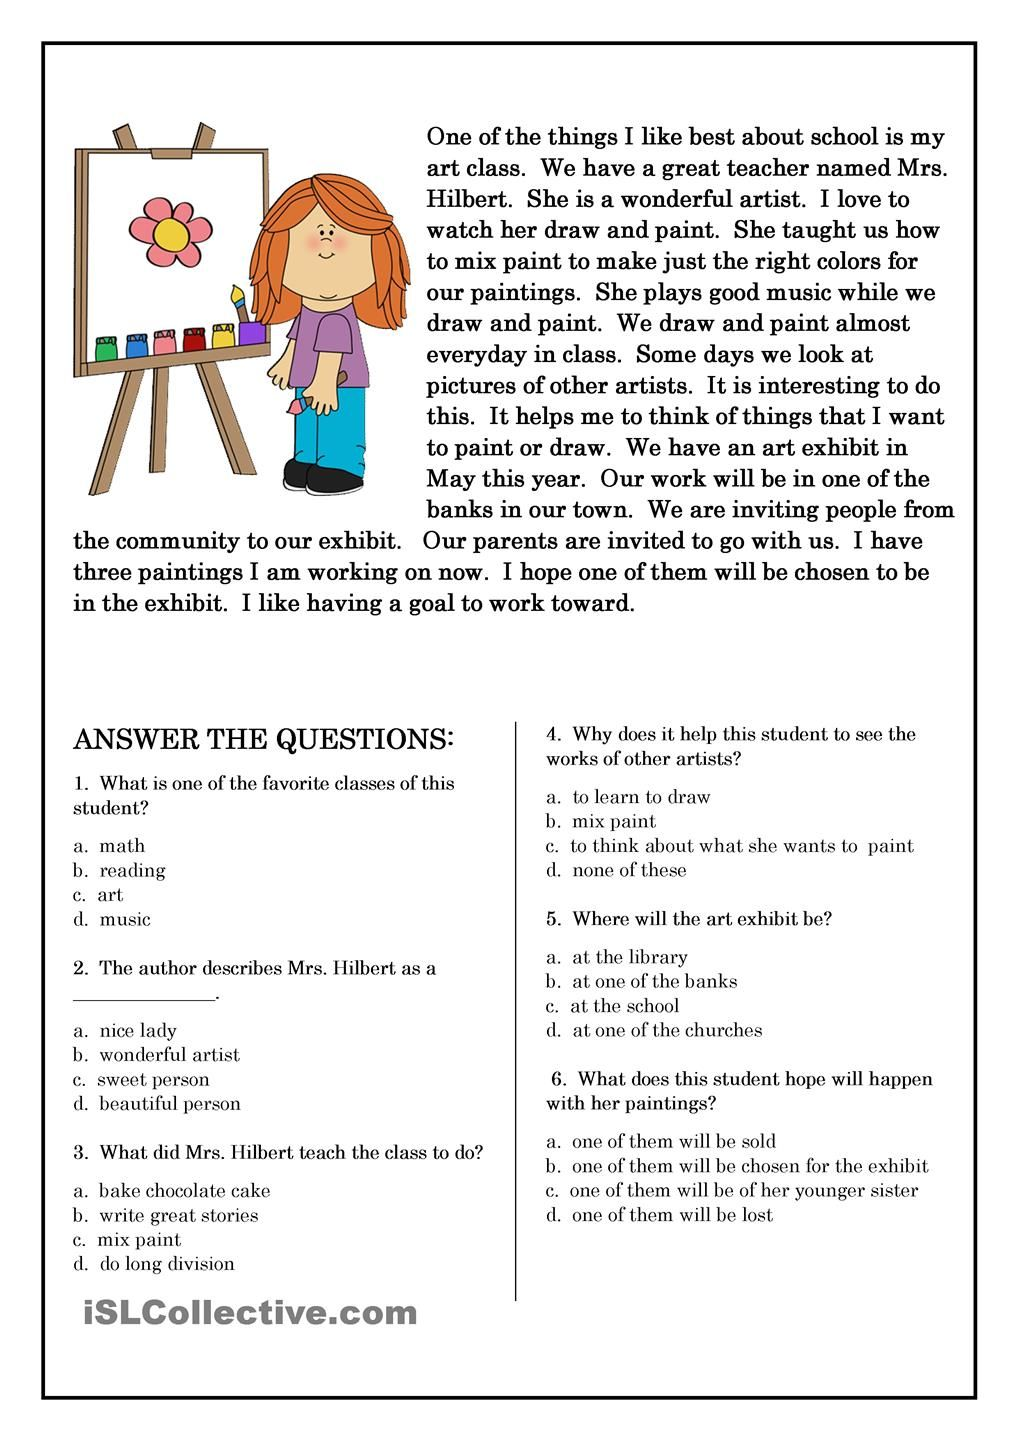 Worksheet Printable Comprehension Worksheets For 4th Grade 1000 images about reading comprehension on pinterest and worksheets